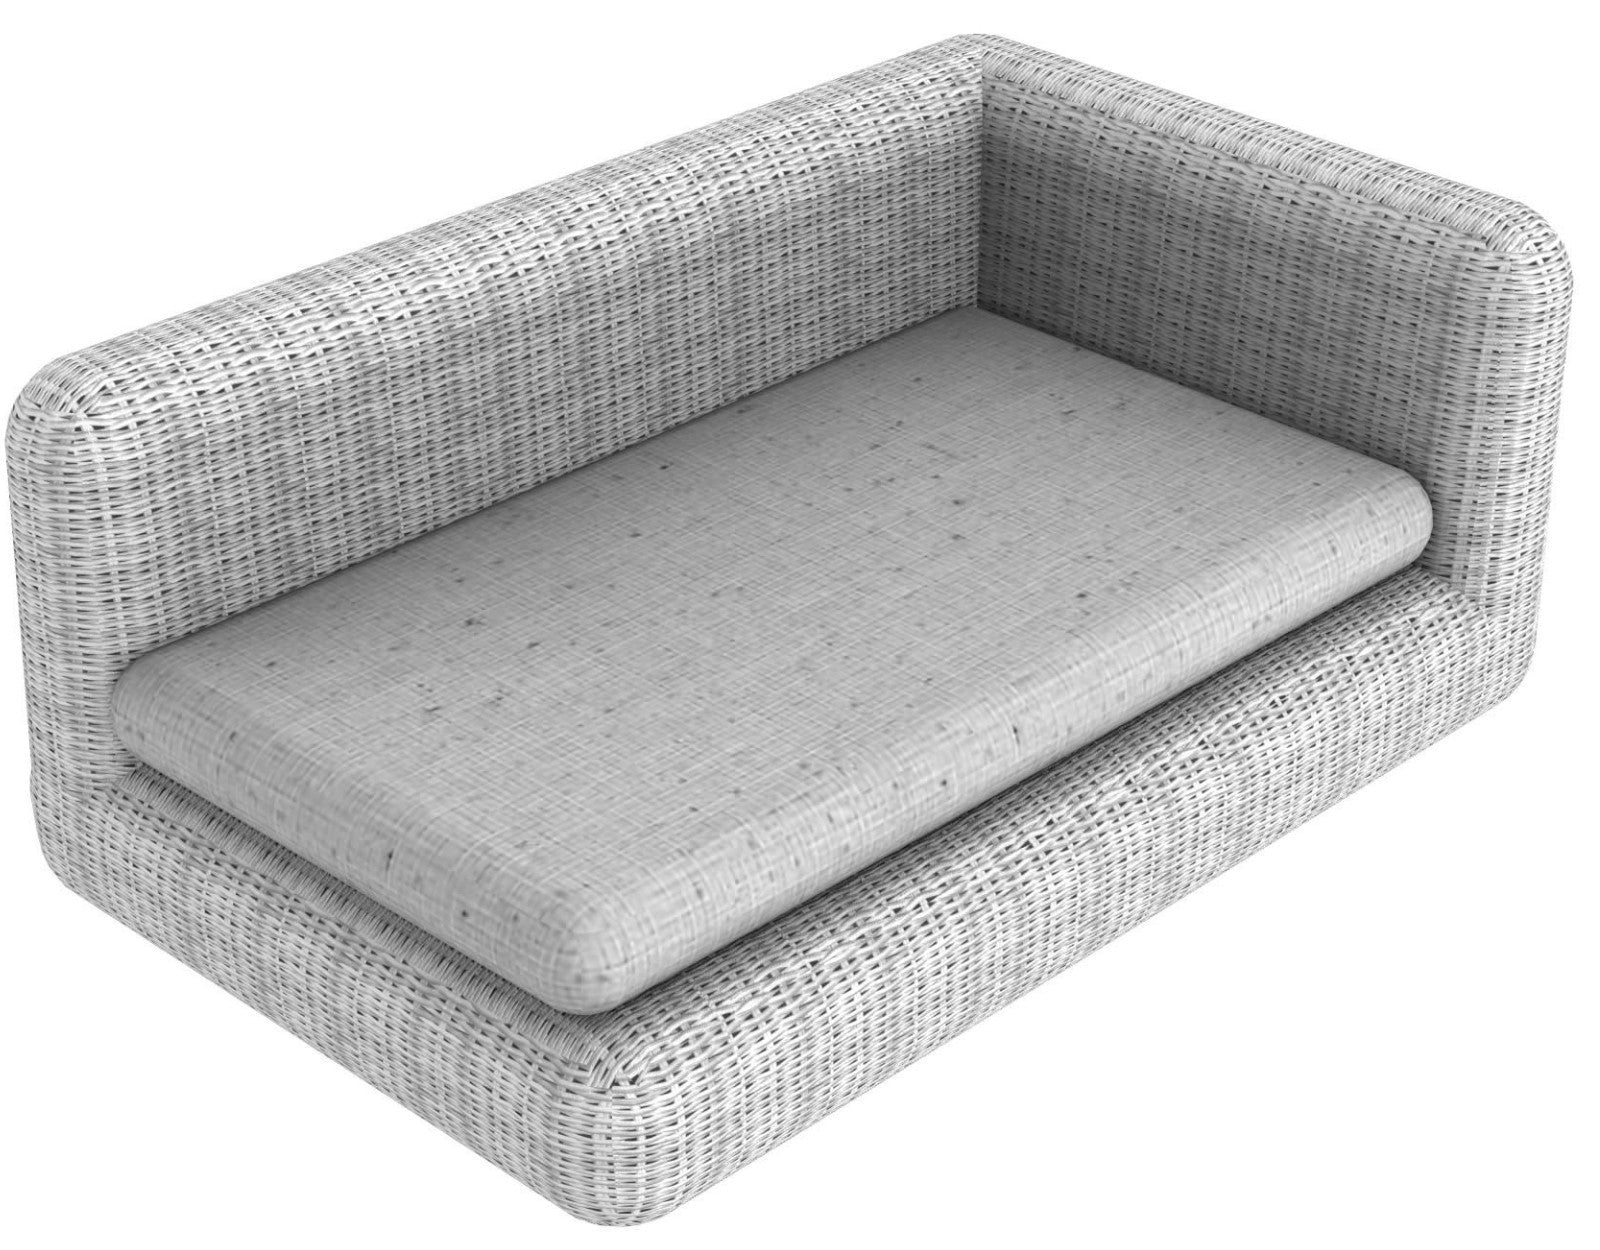 End left module Agorà in WaProLace with 3 cushions with removable covers